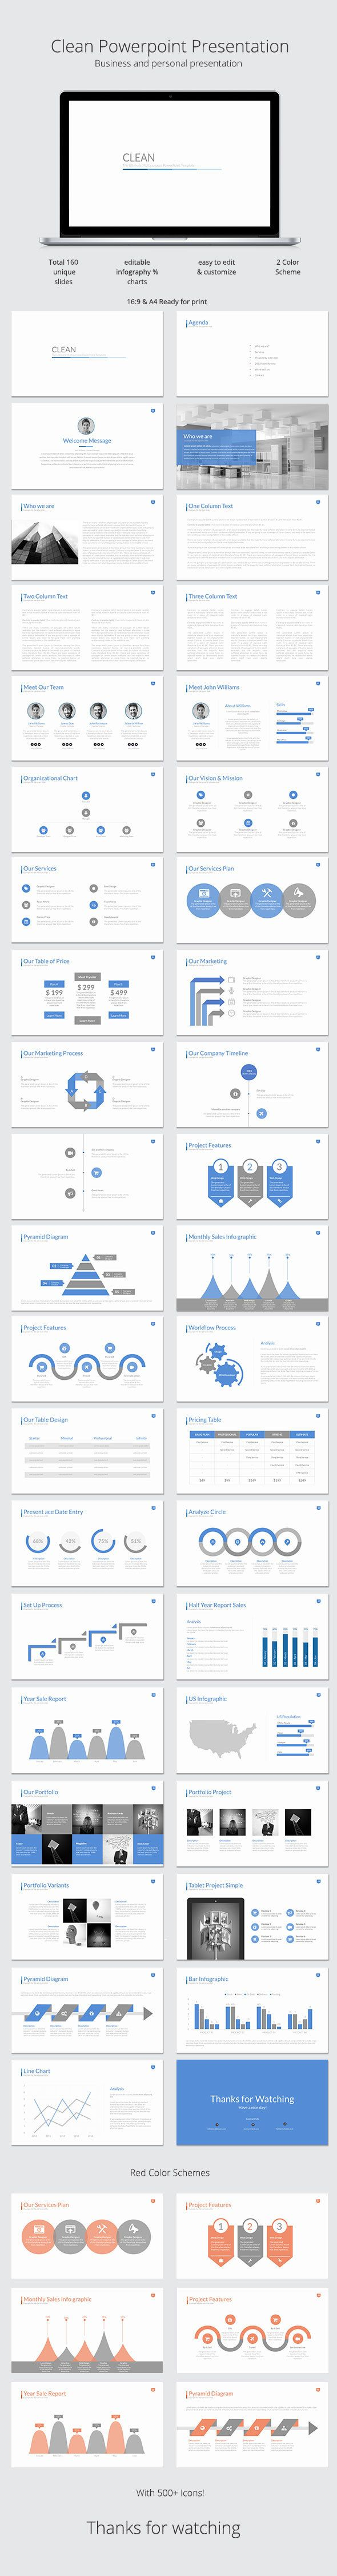 Usdgus  Pretty  Ideas About Presentation On Pinterest  Presentation  With Exquisite Clean Powerpoint Presentation Template Design Slides Download Httpgraphicriver With Appealing Deforestation Powerpoint Also Powerpoint Waterfall Chart In Addition Religion Powerpoint And Excited Delirium Powerpoint As Well As Adding And Subtracting Integers Powerpoint Additionally School Powerpoint Backgrounds From Pinterestcom With Usdgus  Exquisite  Ideas About Presentation On Pinterest  Presentation  With Appealing Clean Powerpoint Presentation Template Design Slides Download Httpgraphicriver And Pretty Deforestation Powerpoint Also Powerpoint Waterfall Chart In Addition Religion Powerpoint From Pinterestcom